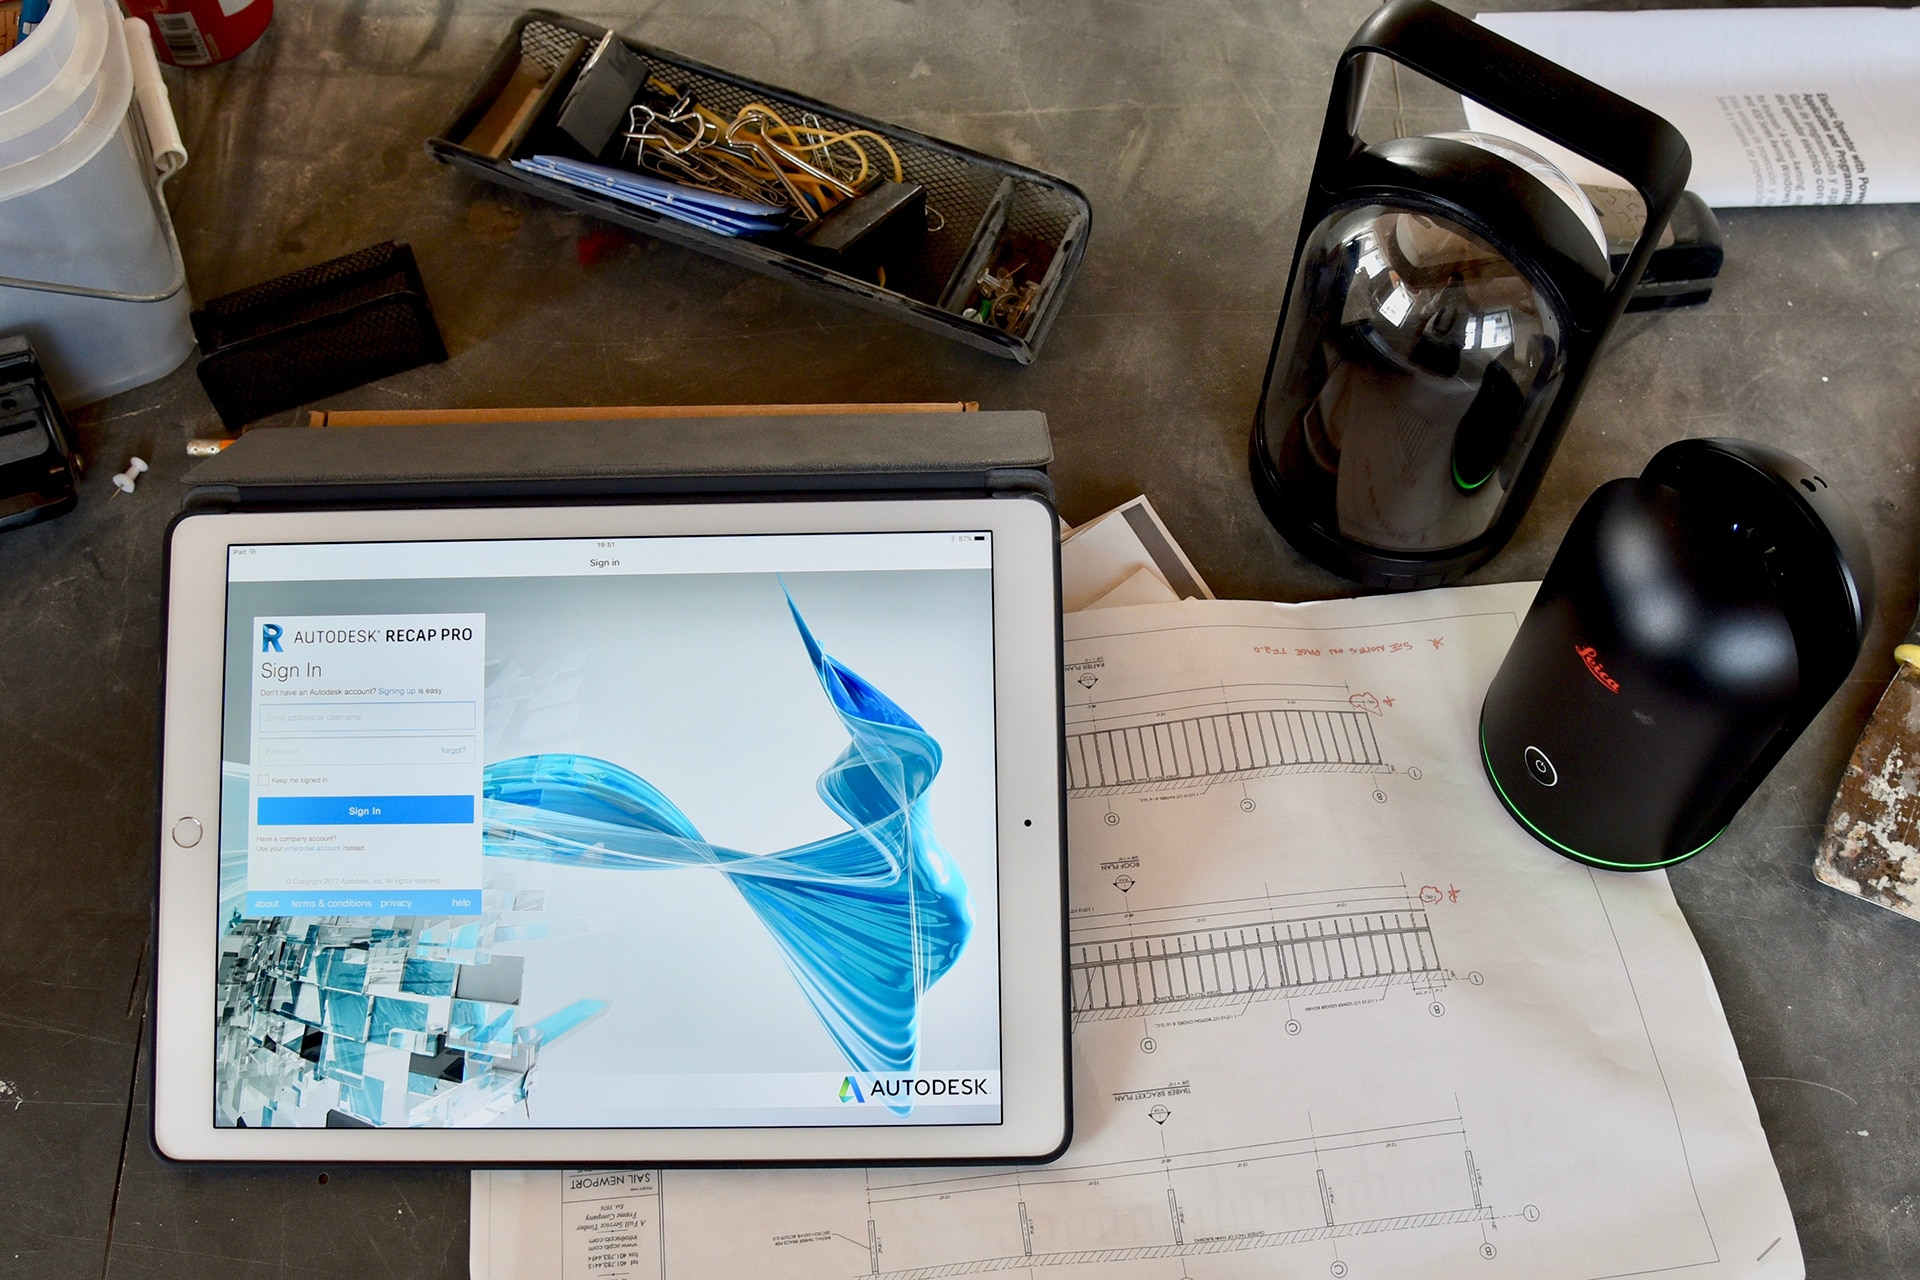 ReCap | Reality Capture And 3D Scanning Software | Autodesk